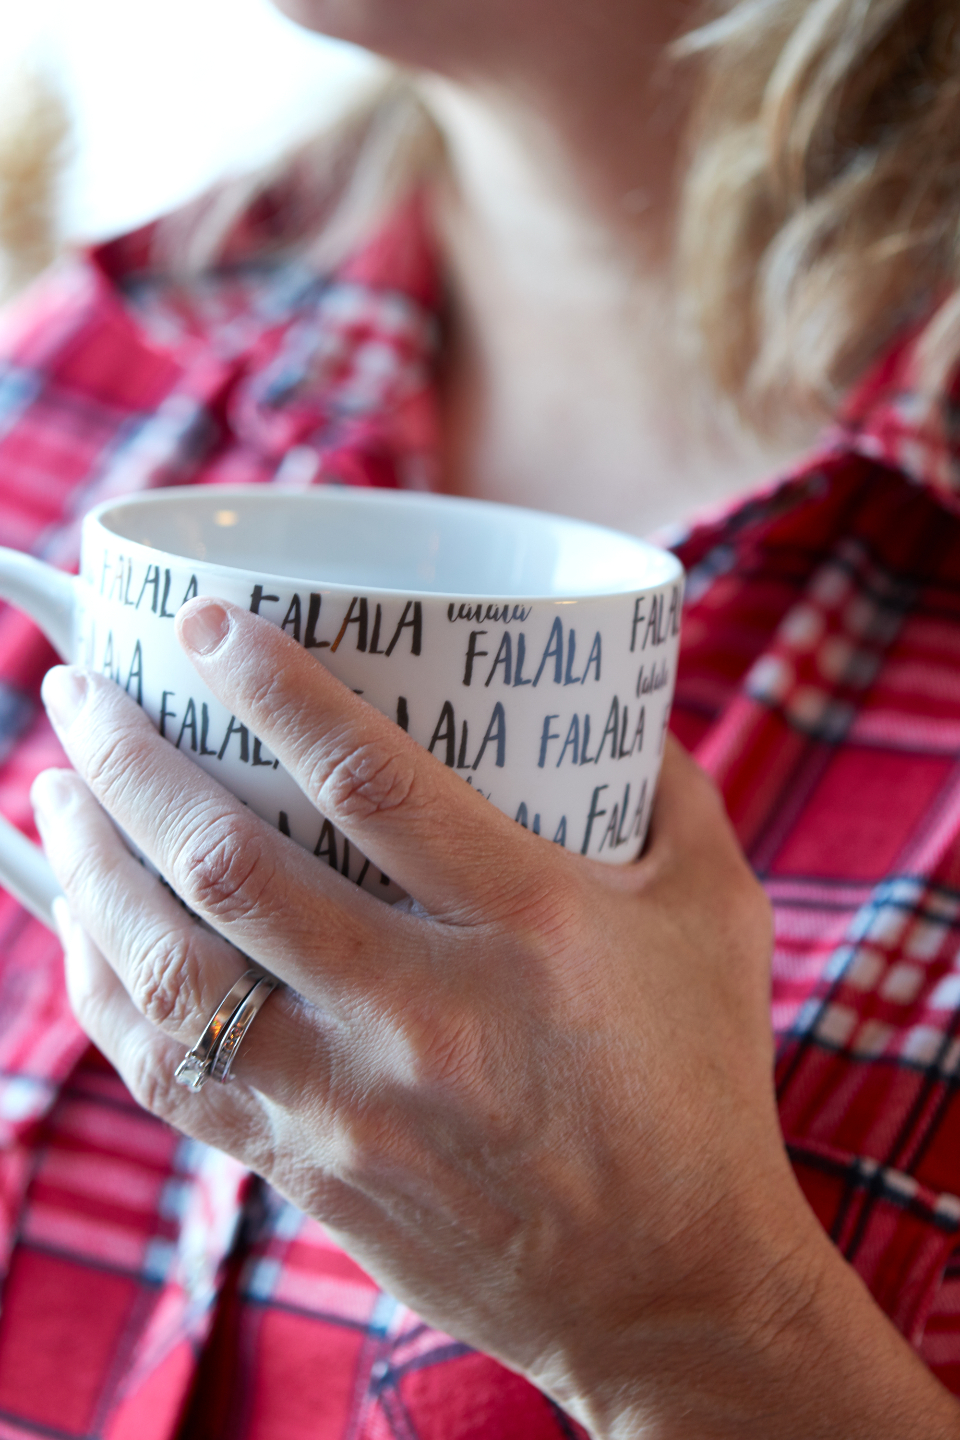 cozy coffee mug woman christmas hot beverage background drink adult hand warm object close up festive person plaid flannel